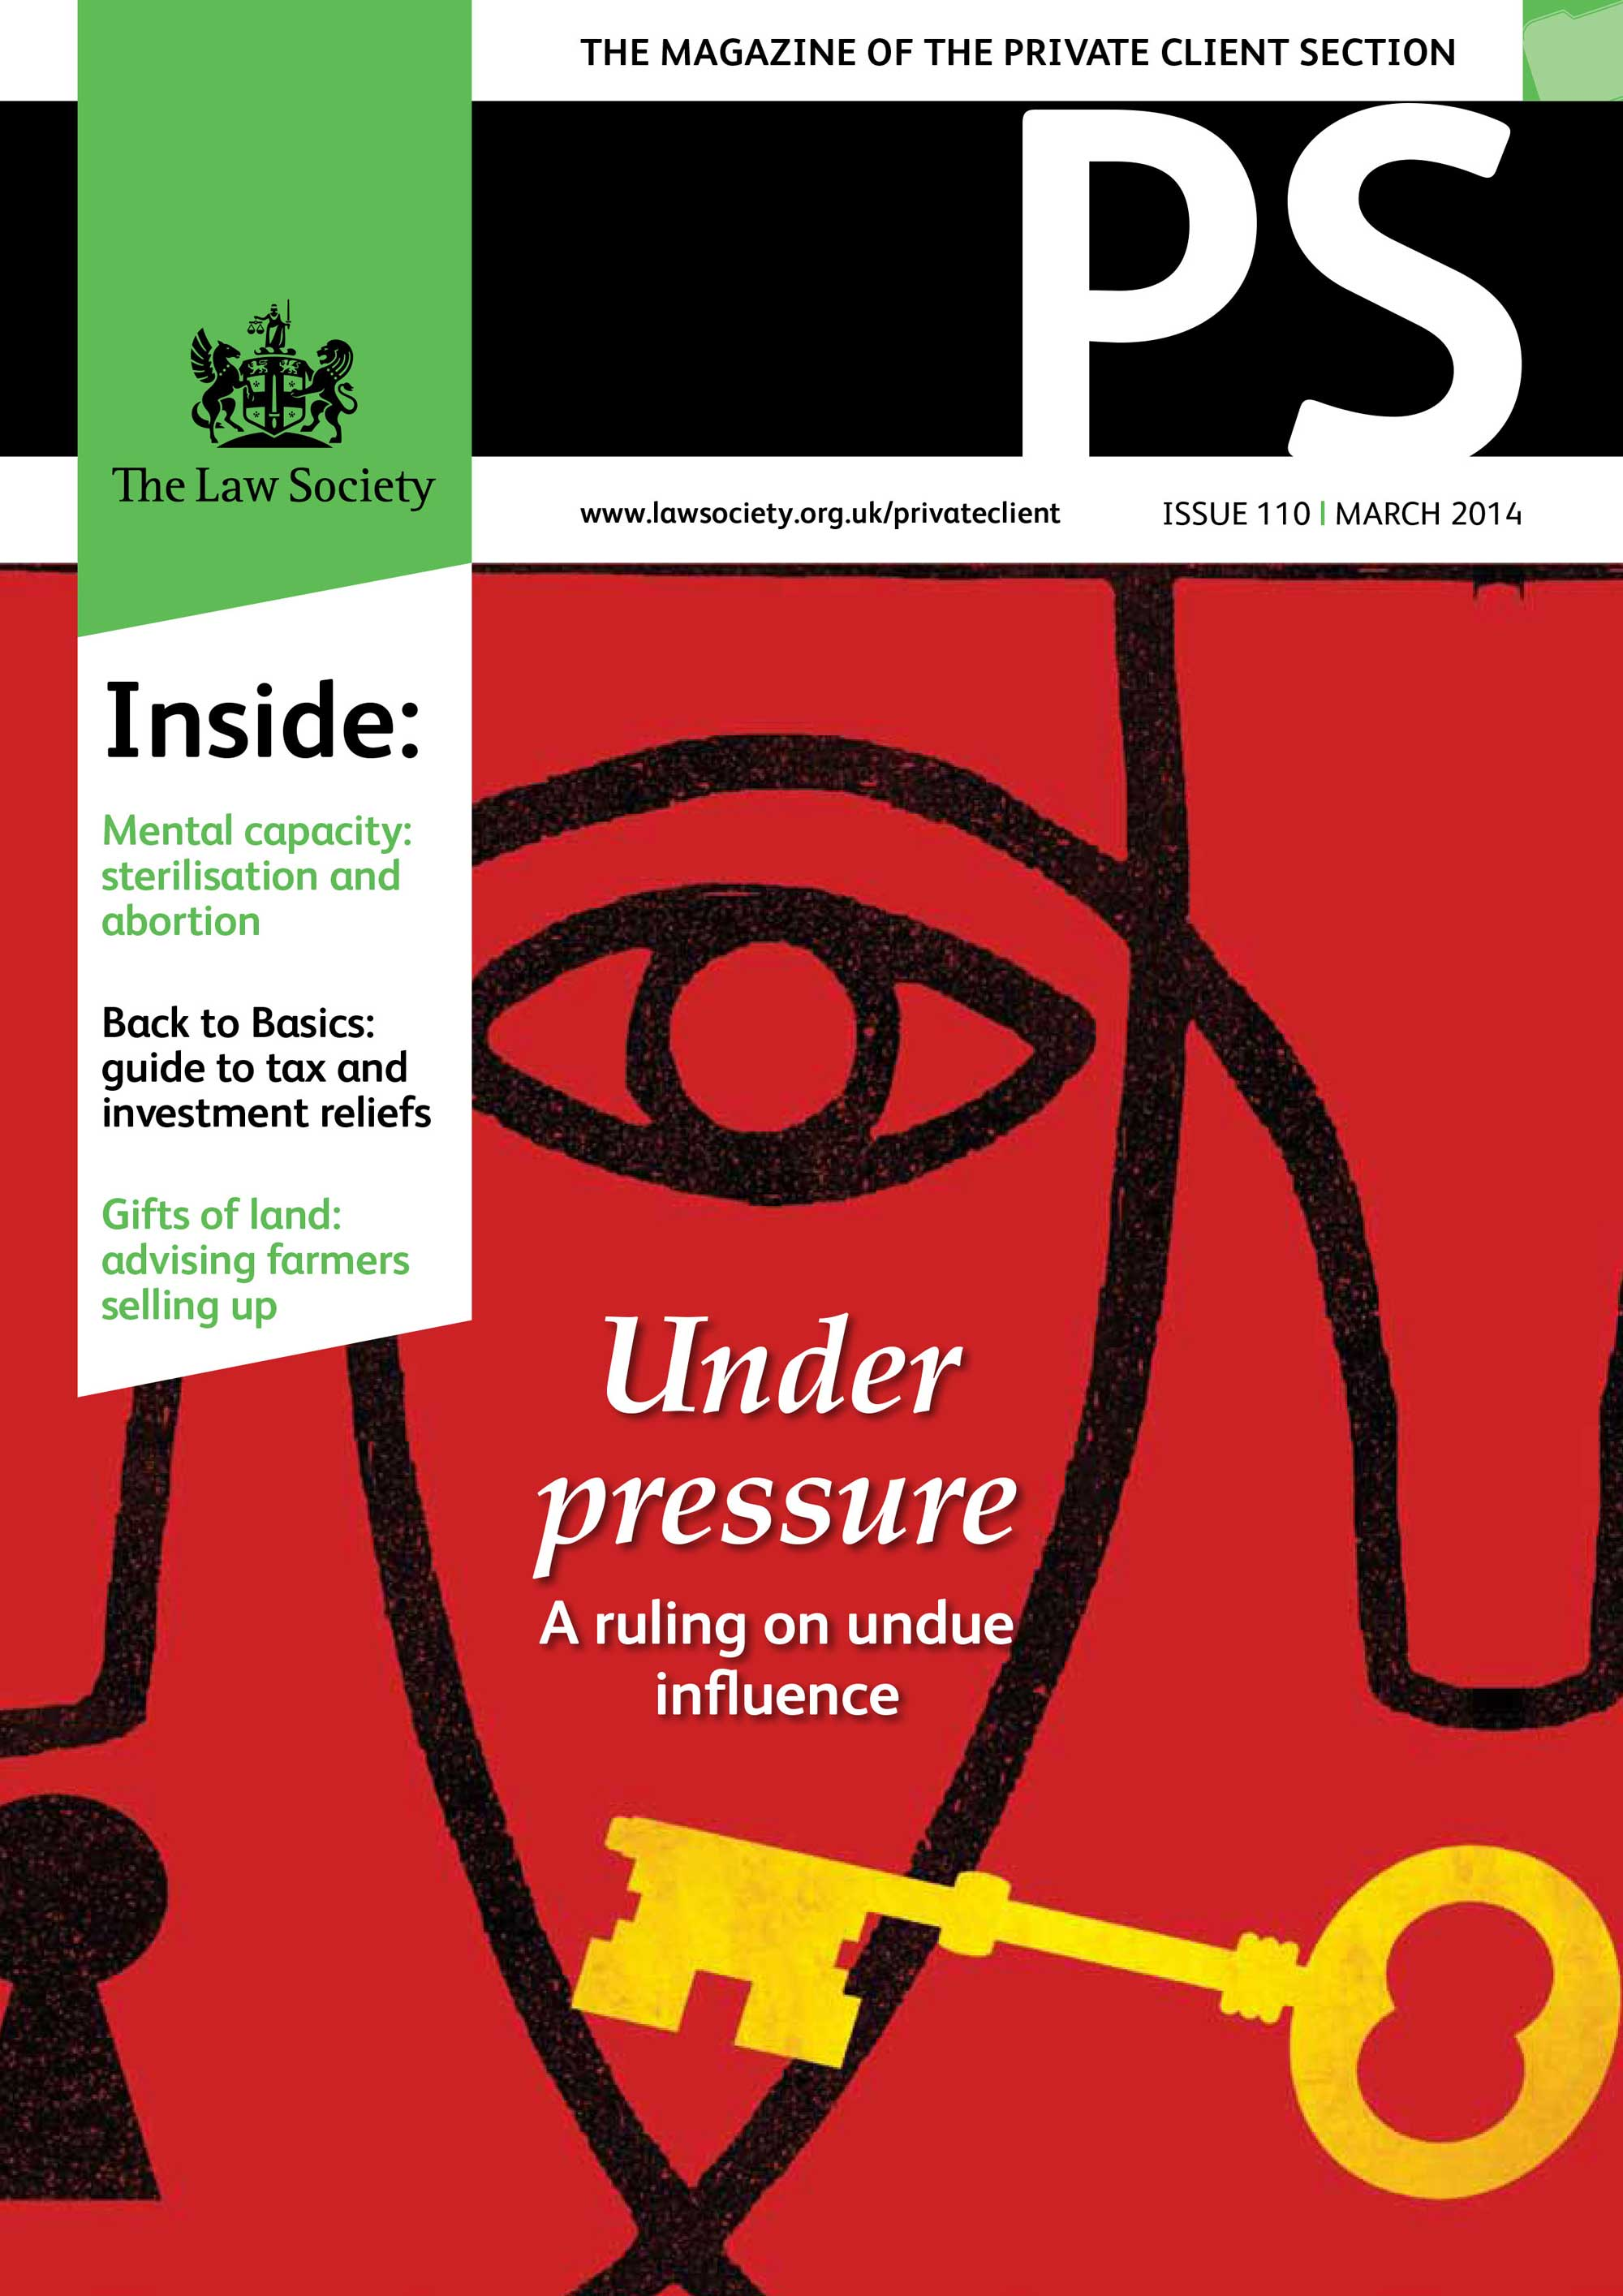 PS March 2014 Cover